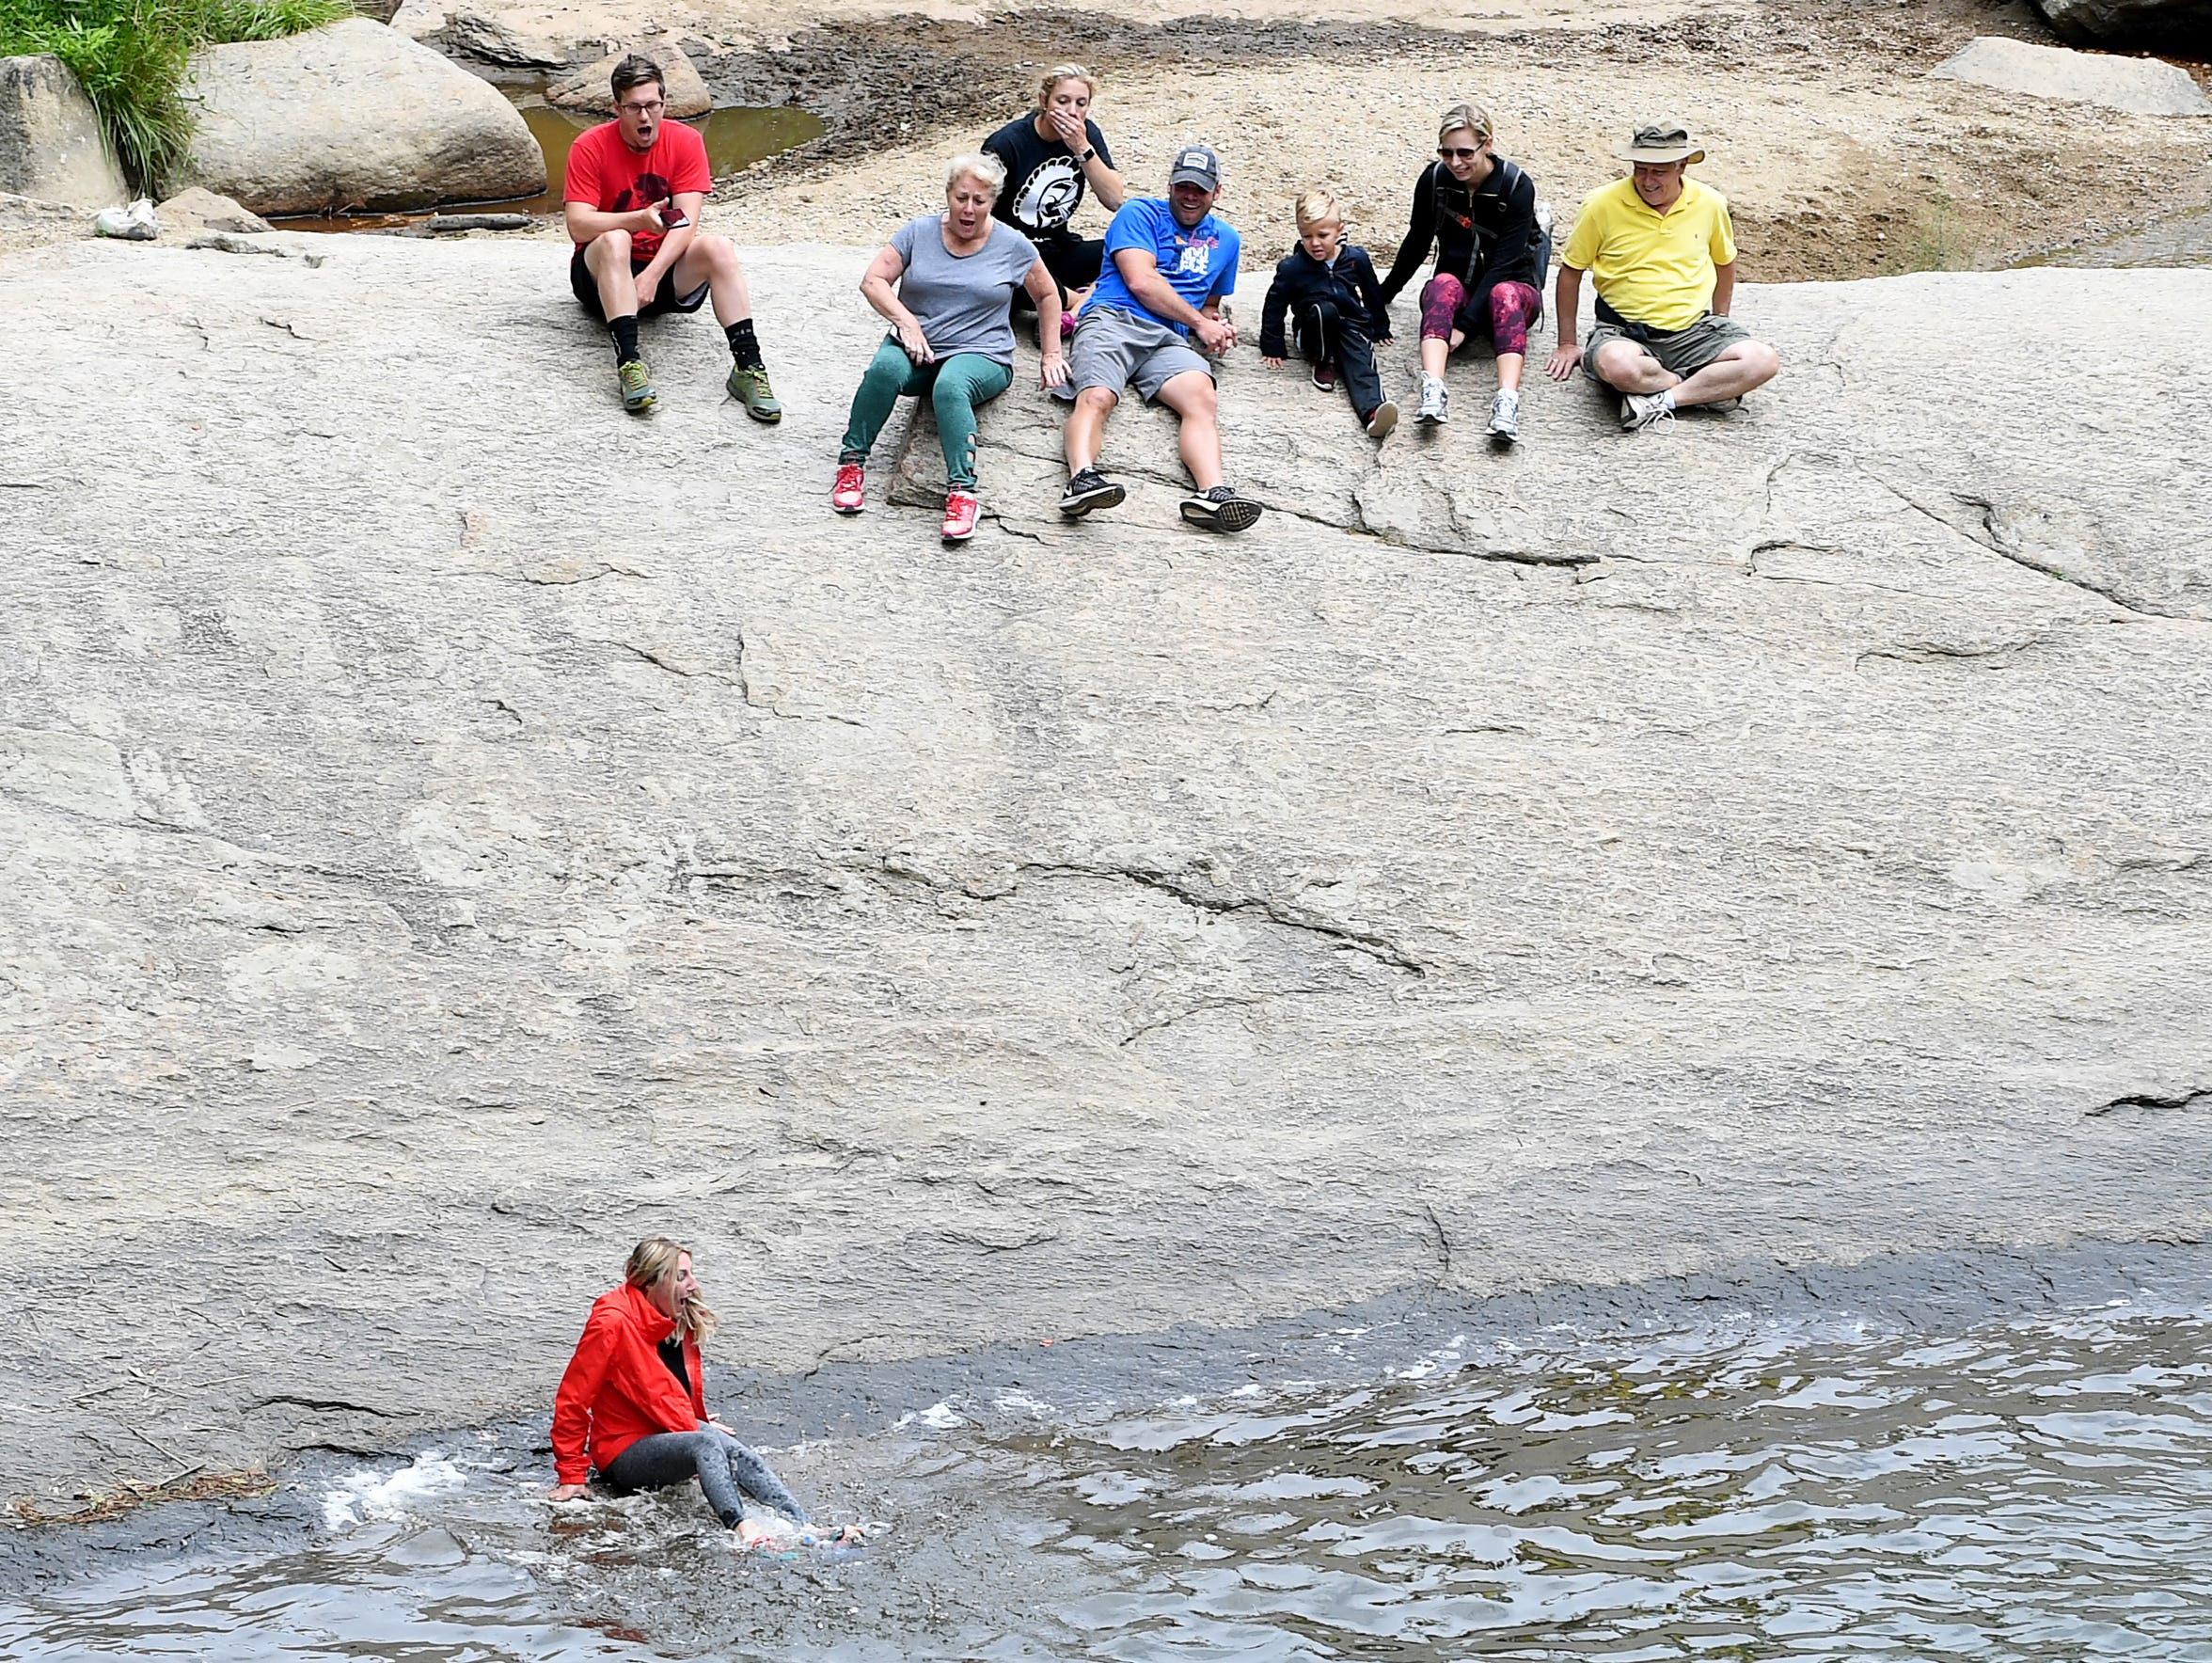 A woman slips into the water at the base of Elk River